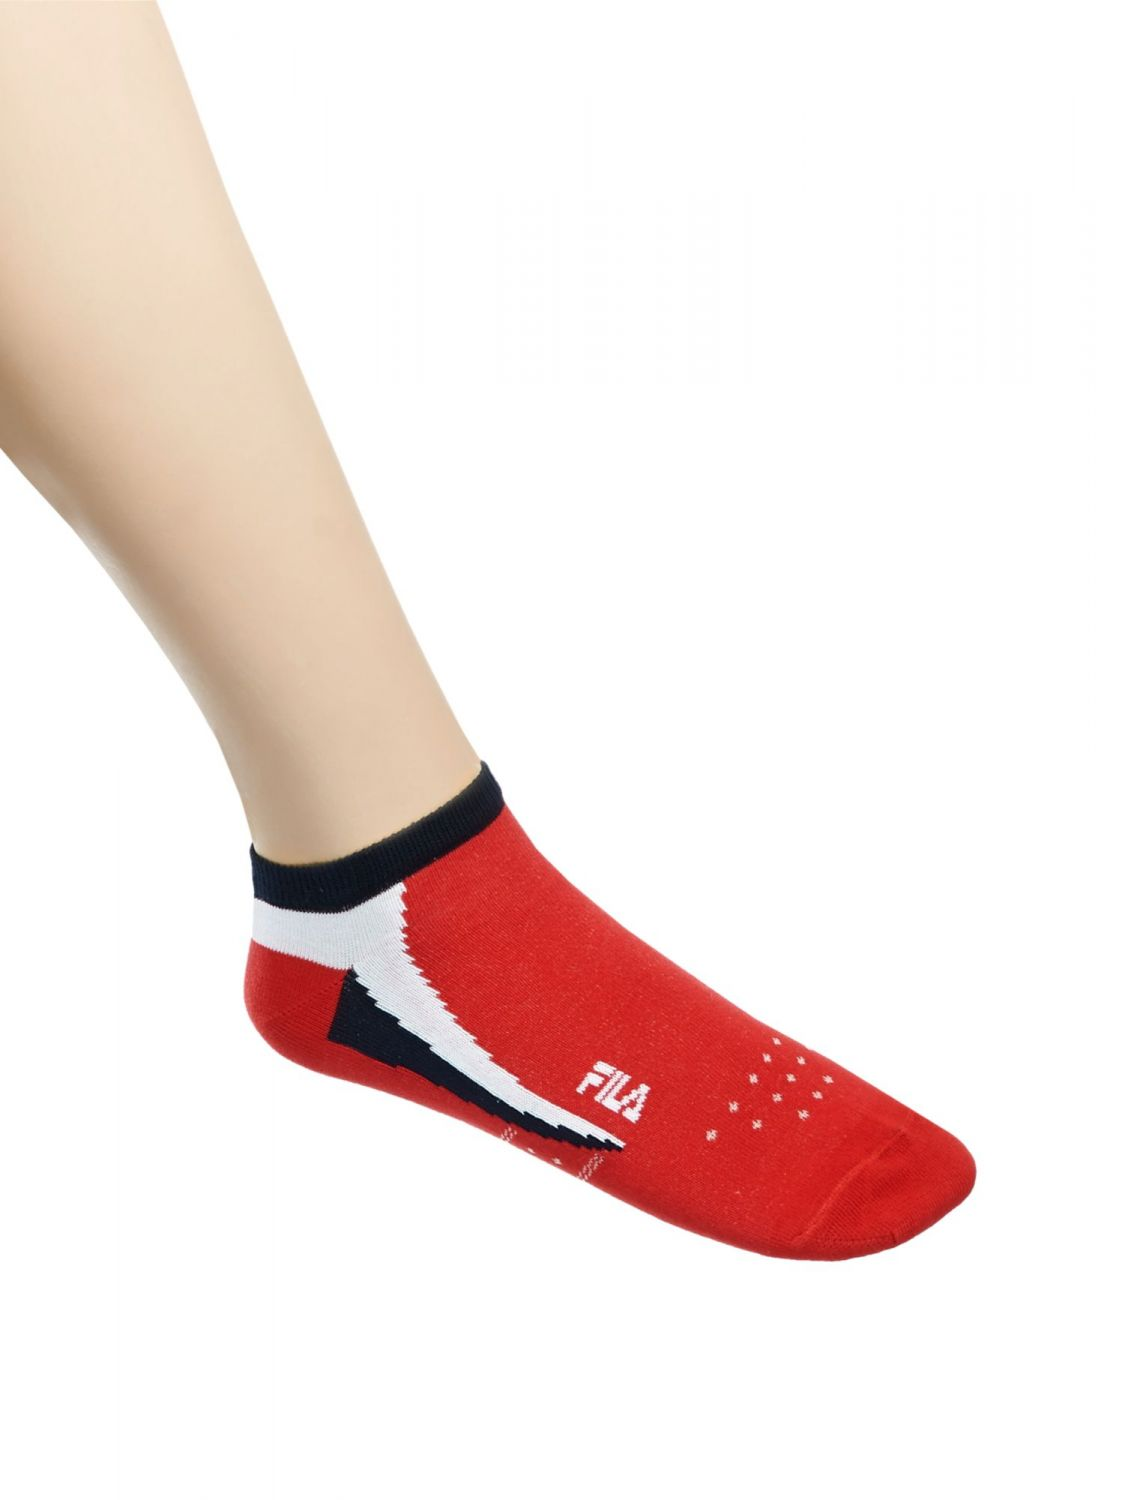 fila sneaker socken 00014201567961 white fila germany. Black Bedroom Furniture Sets. Home Design Ideas